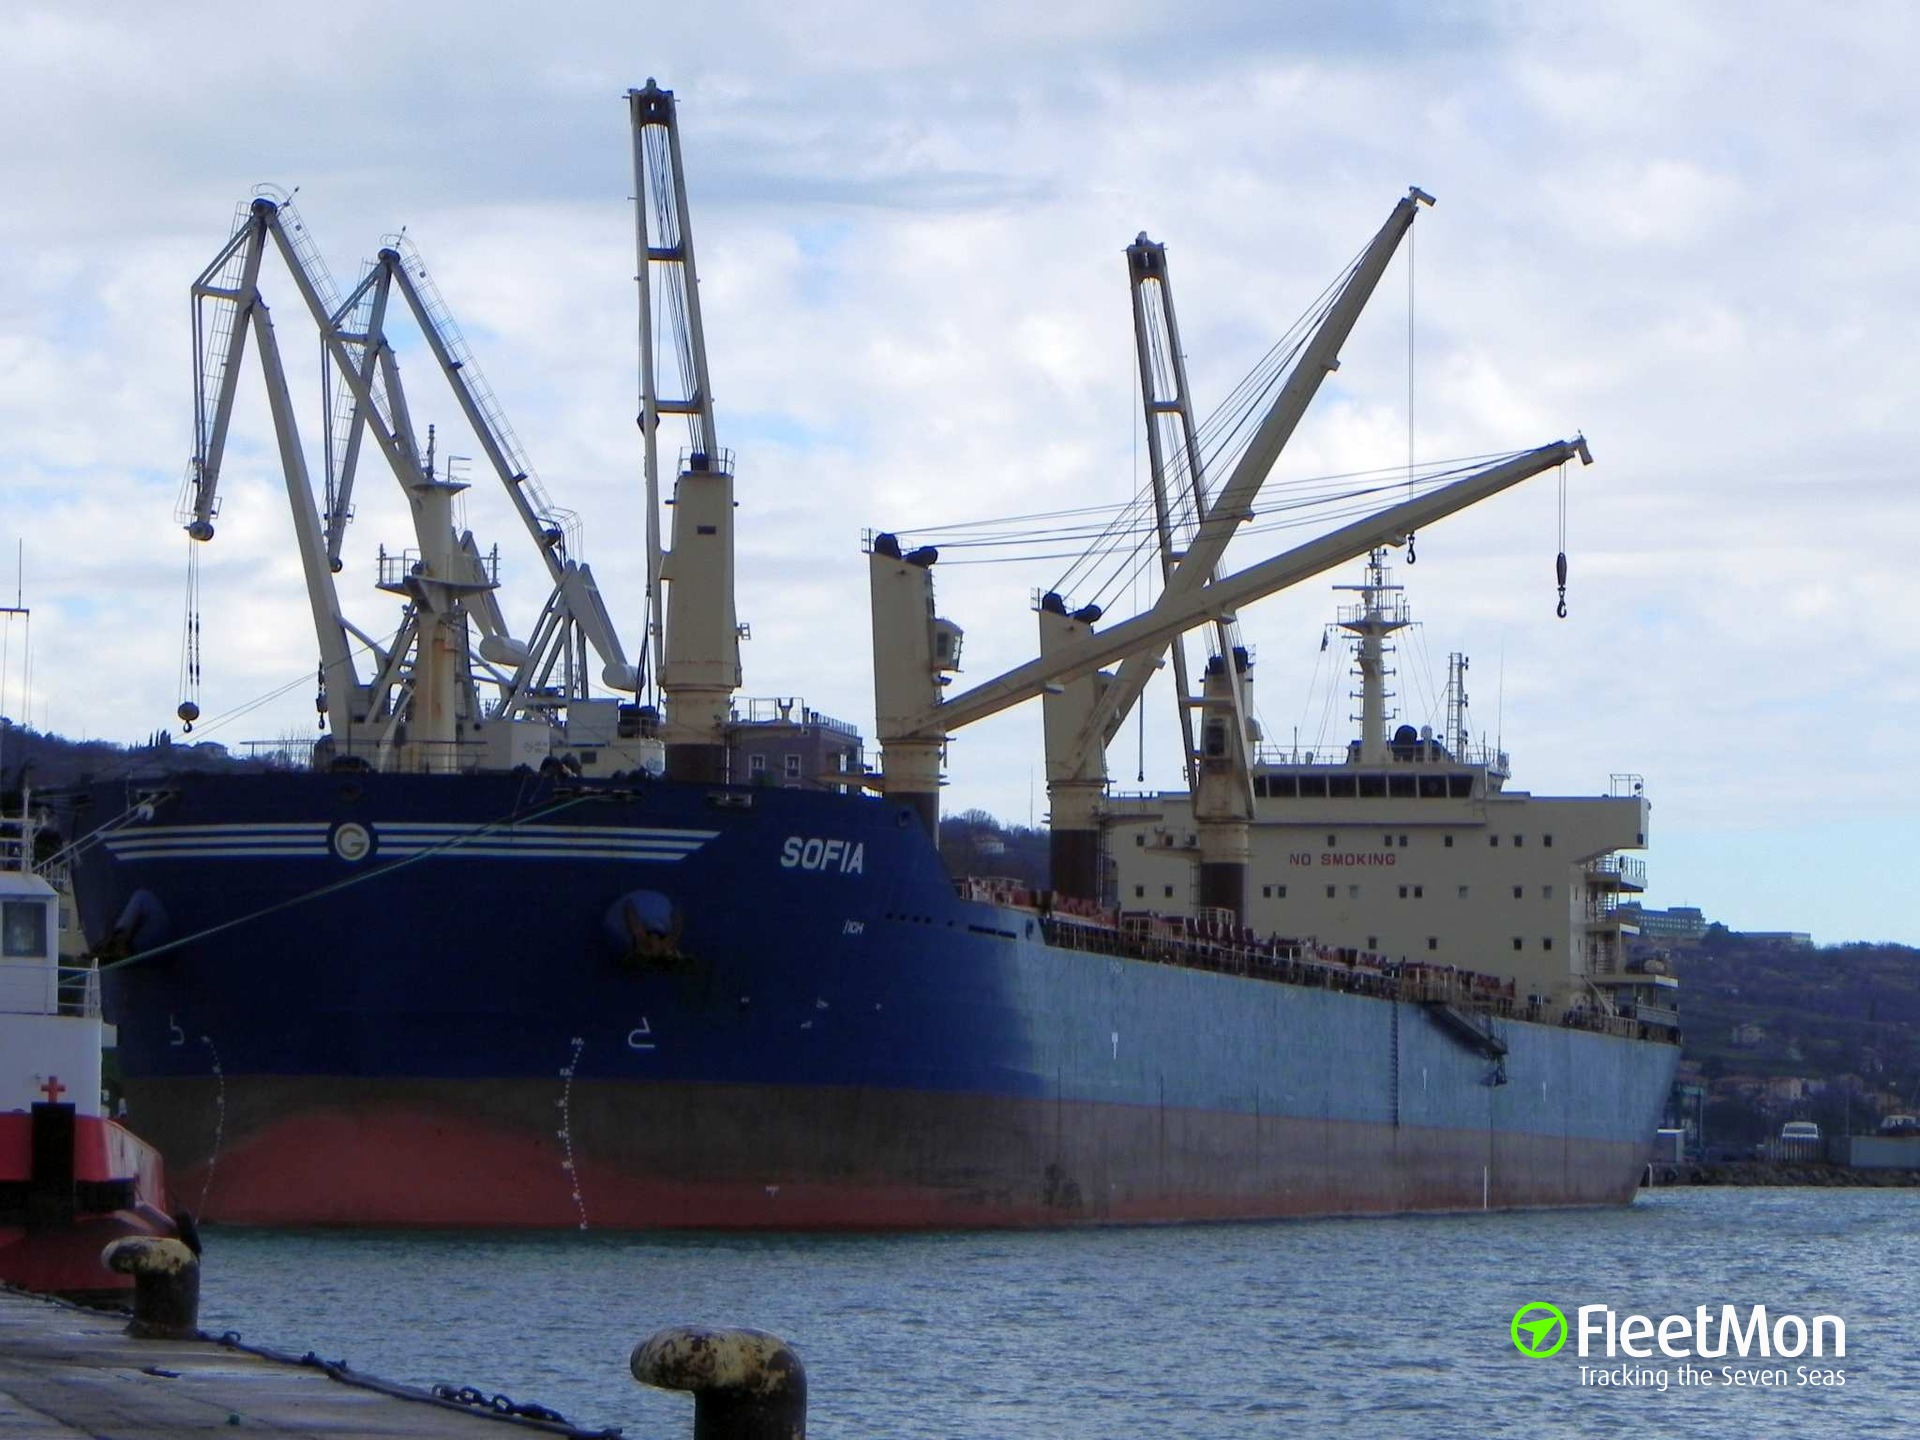 Bulk carrier SOFIA attacked, fired upon, crew safe